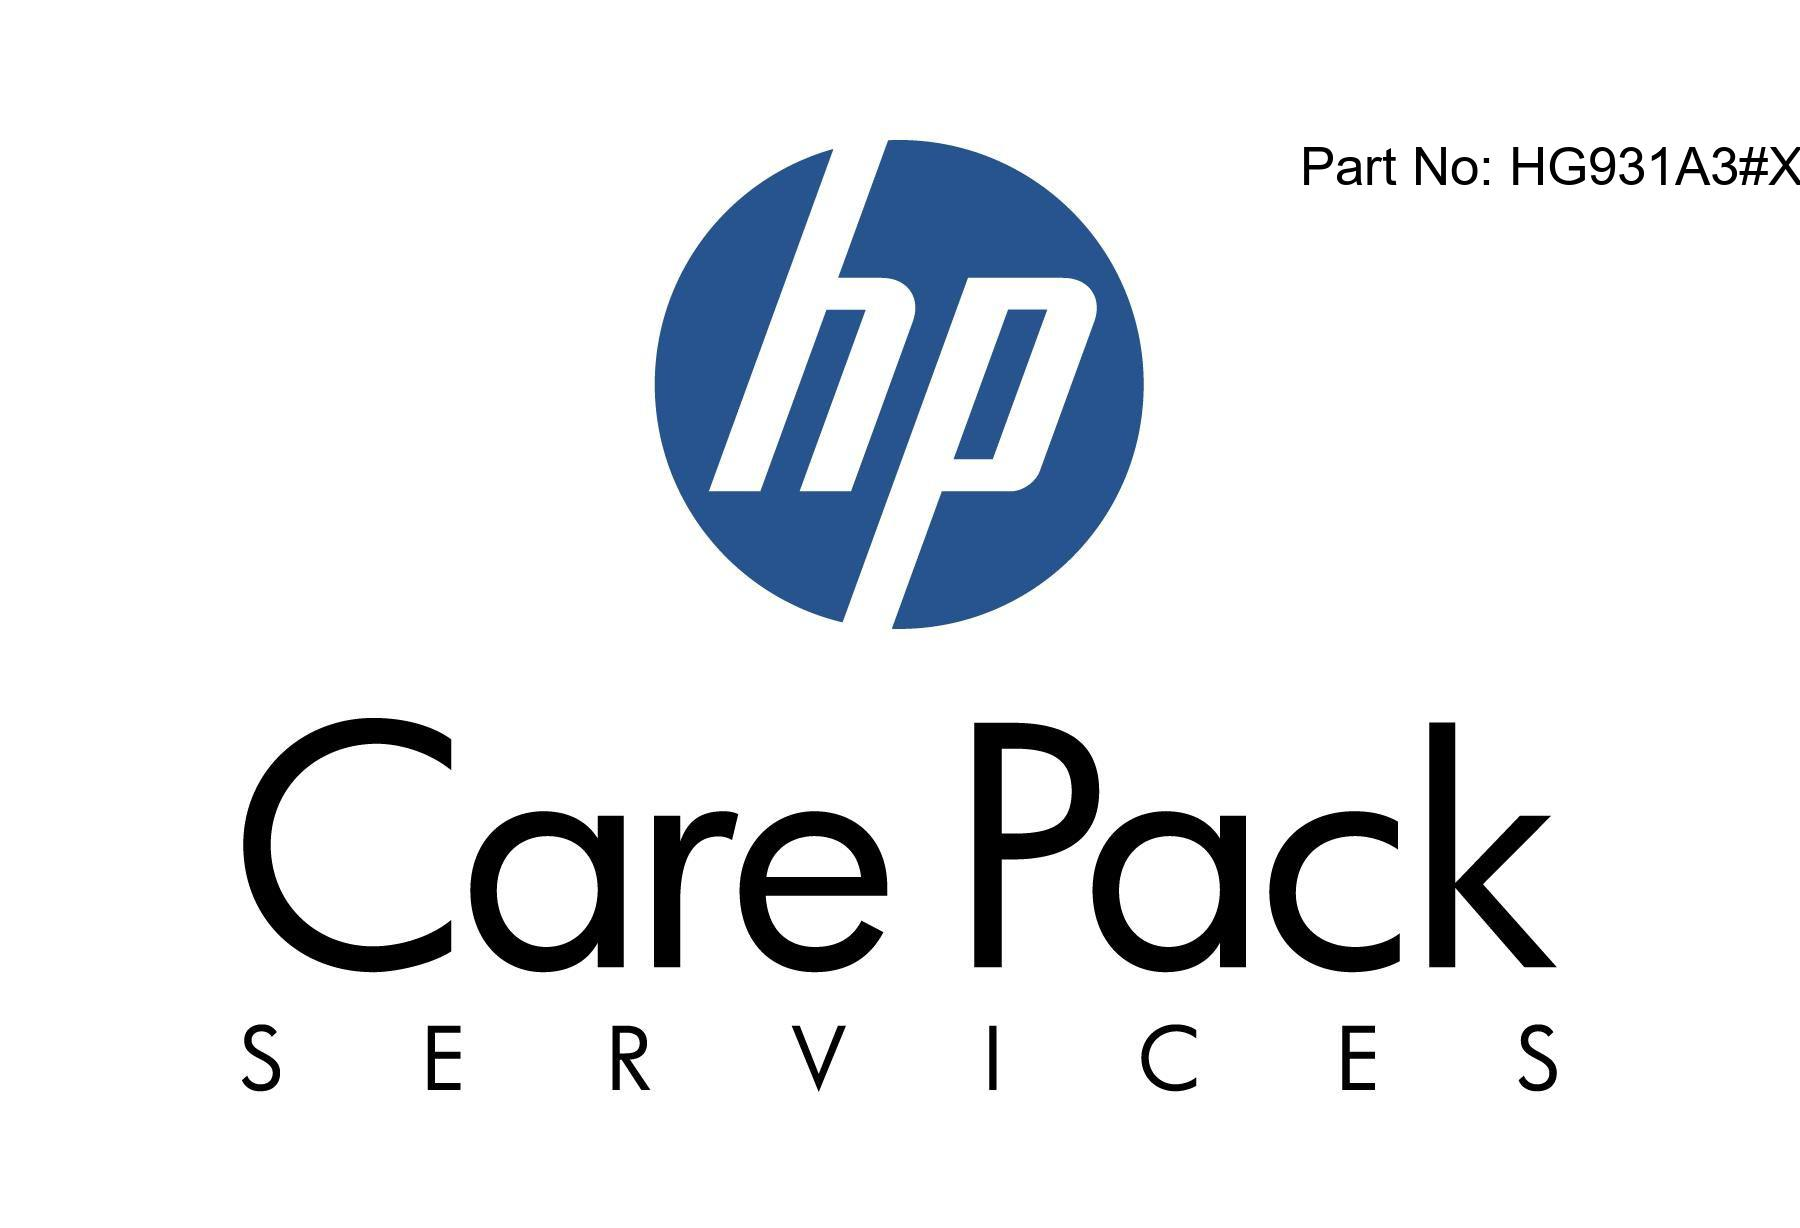 Proactive 24 with Defective Media Retention - Technical support - for HPE 3PAR 8400 Replication Software Suite - 8 drives - phone consulting - 3 years - 24x7 - response time: 2 h